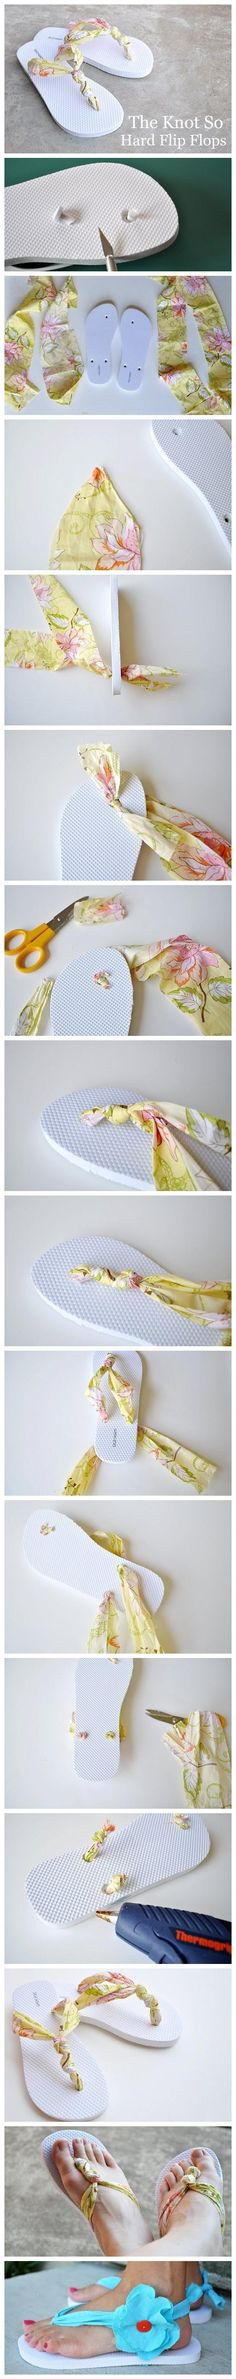 For all of u that bought 1$ flip flops    16 Best DIY Fashion Ideas Ever